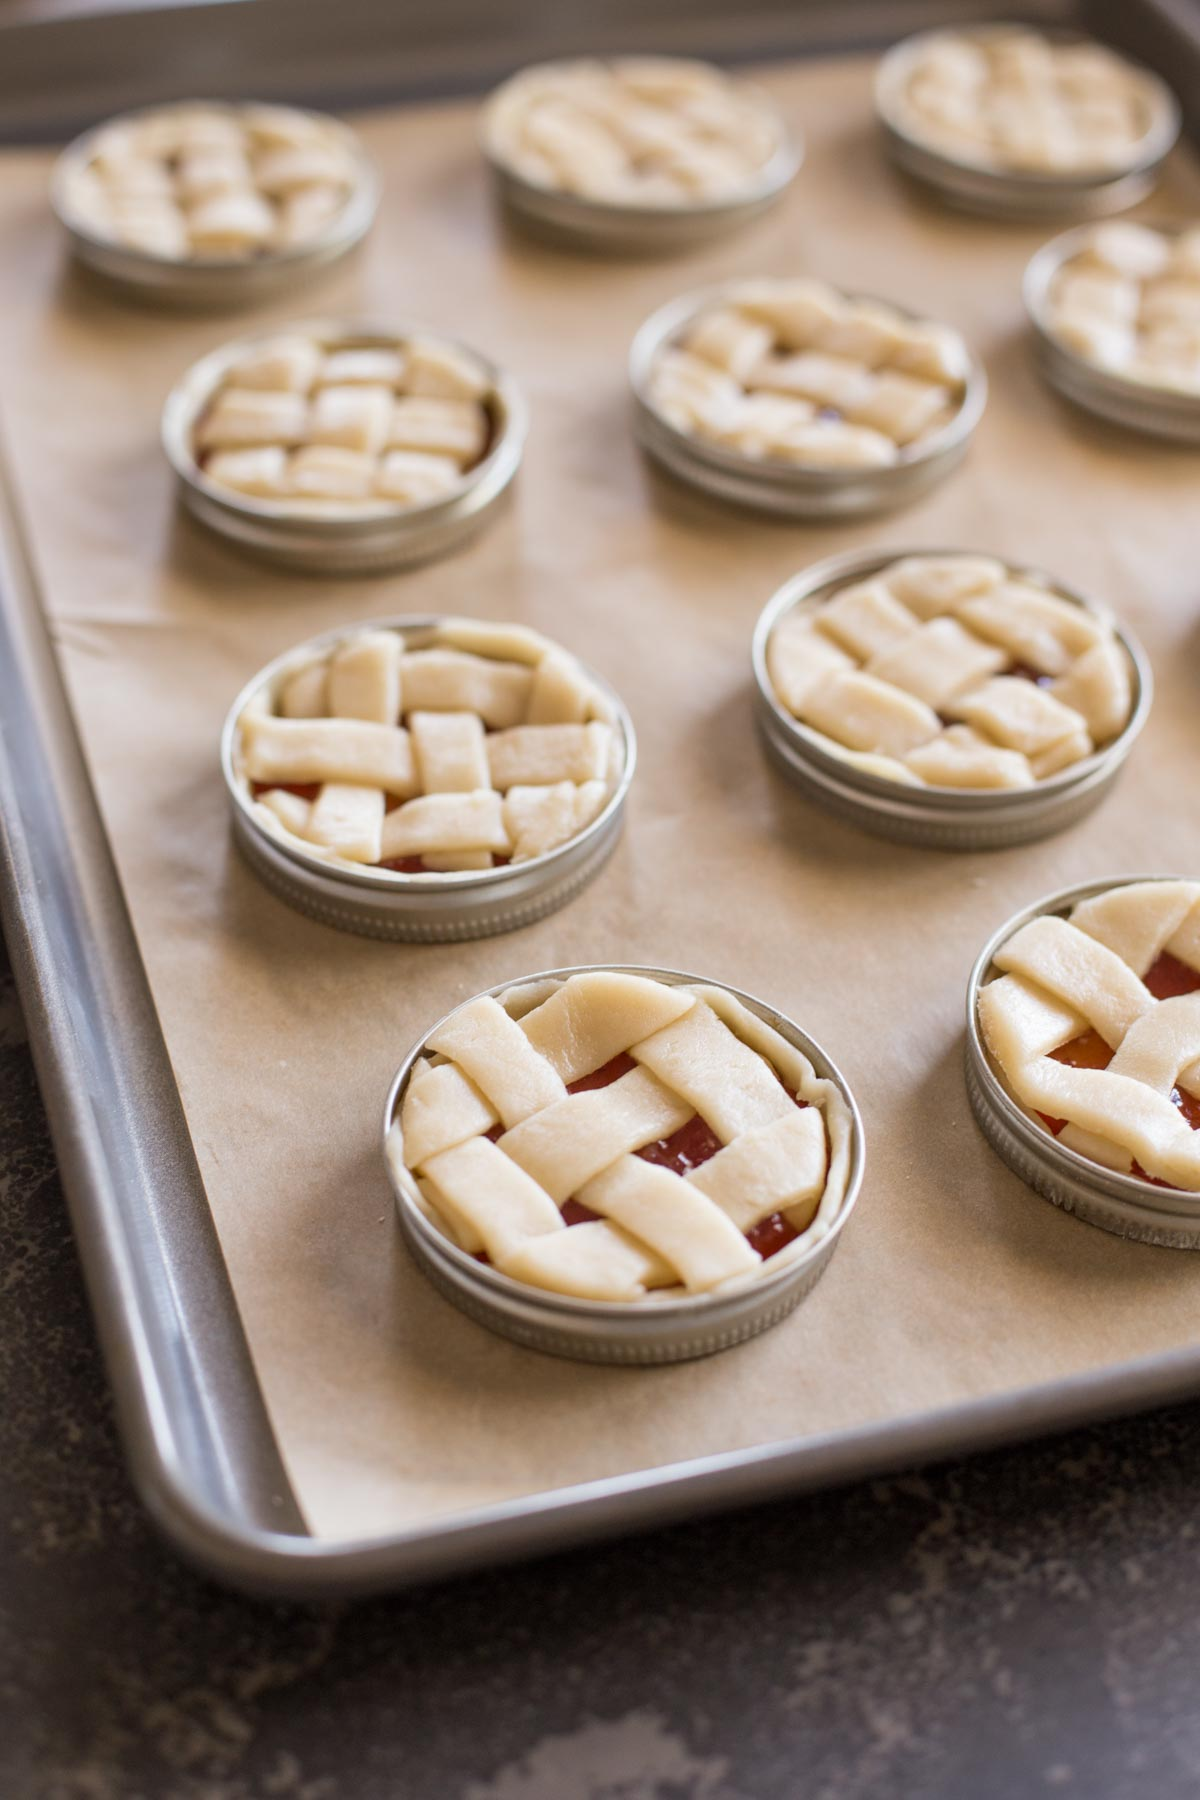 Mini Mason Jar Lid Strawberry Pies assembled and arranged on a parchment paper lined baking sheet before baking.